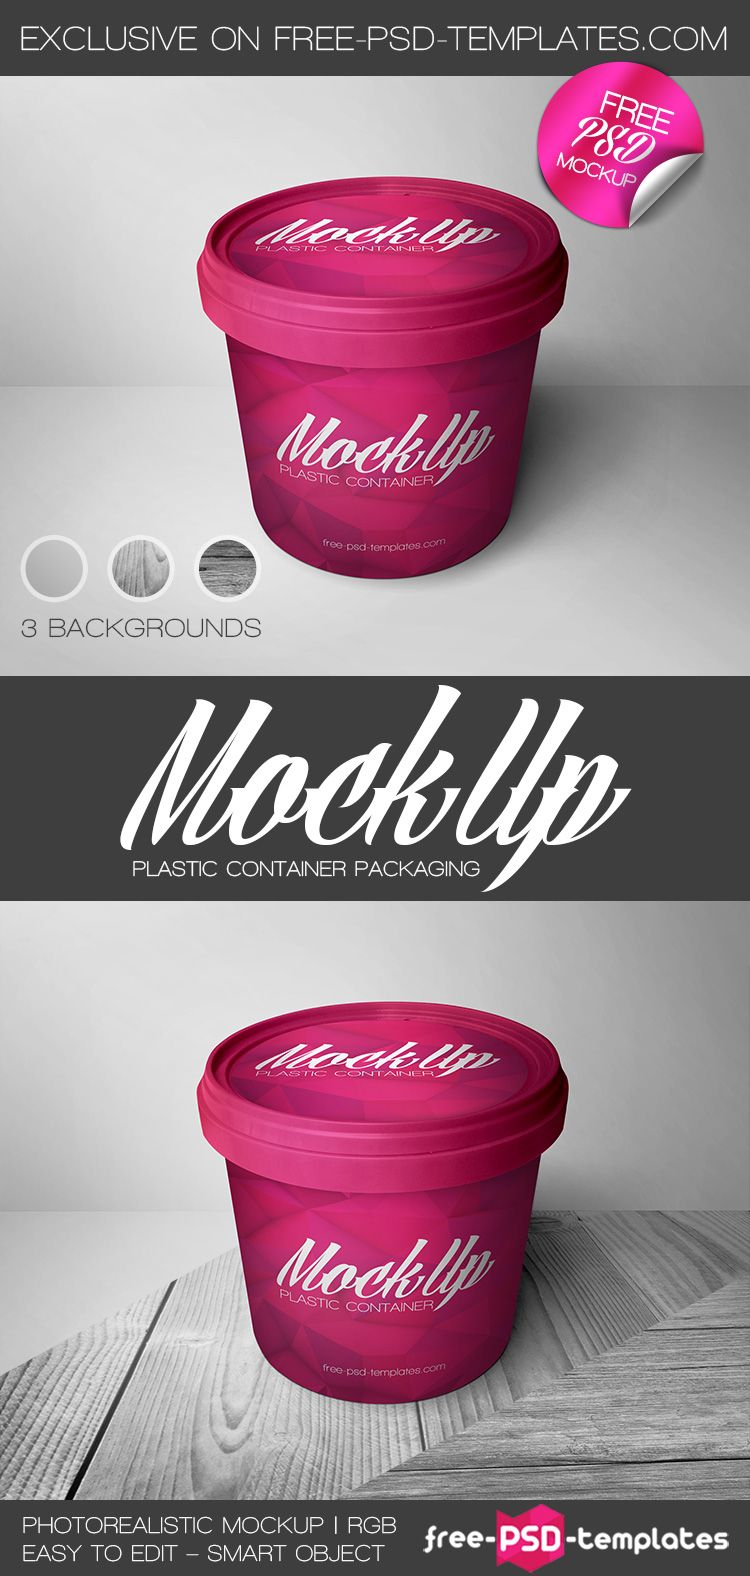 Download Free Plastic Container Packaging Mock Up In Psd Mockup Mockup Free Psd Packaging Mockup